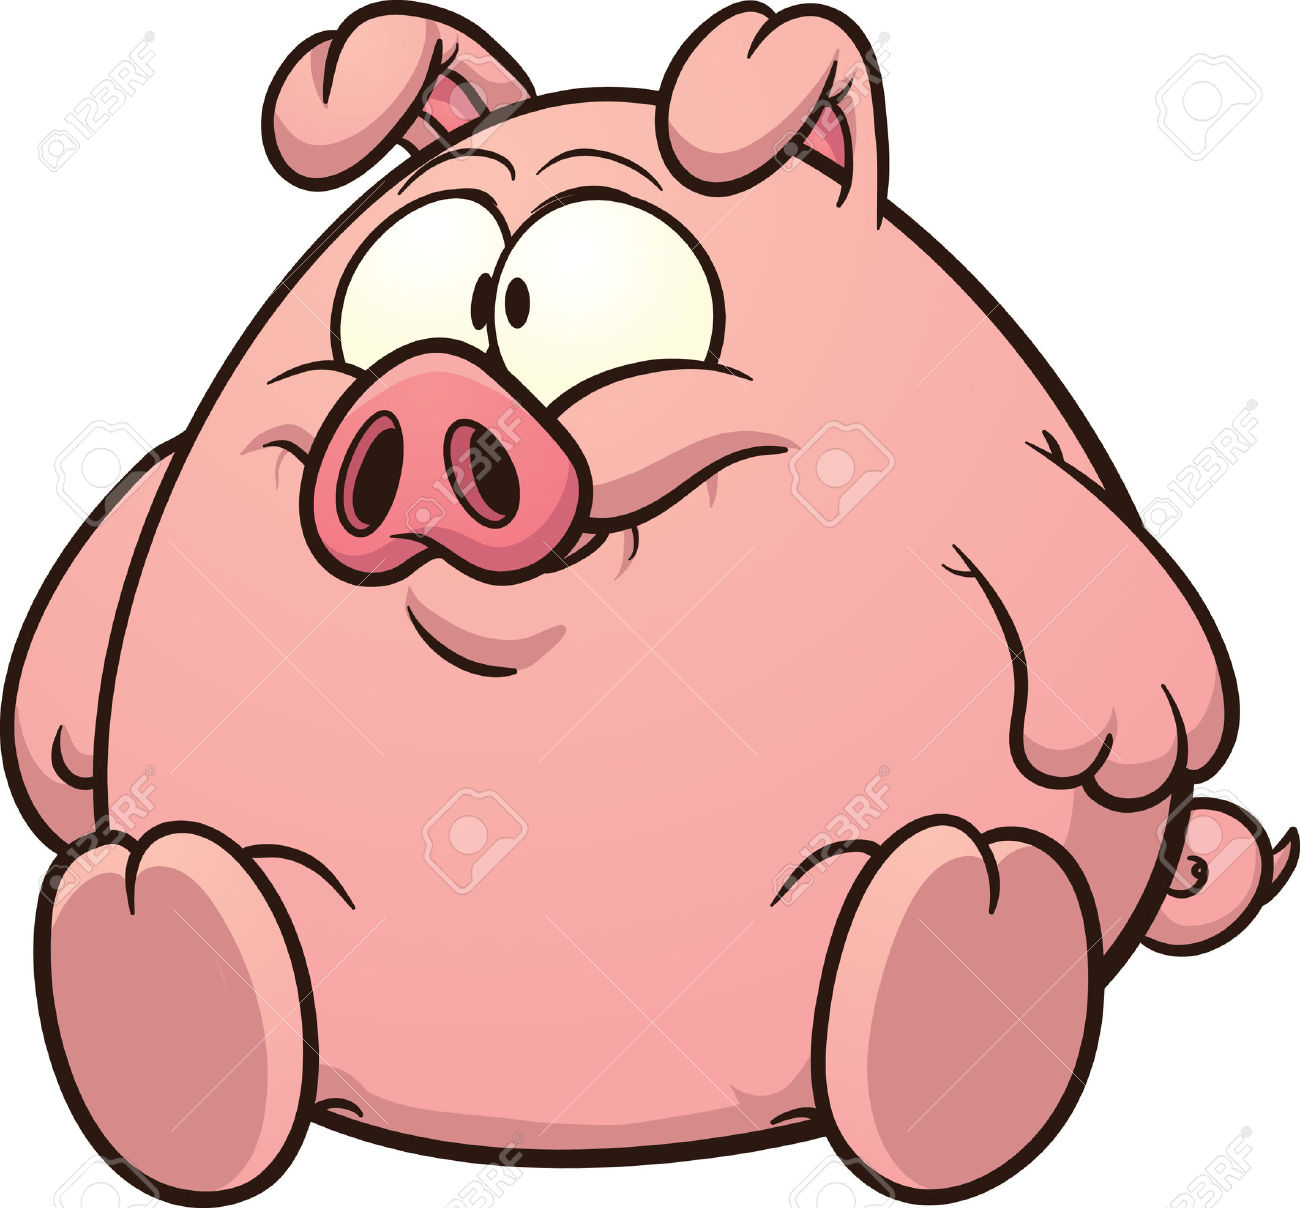 1300x1208 Crafty Inspiration Ideas Fat Clipart Pig Clip Art Royalty Free